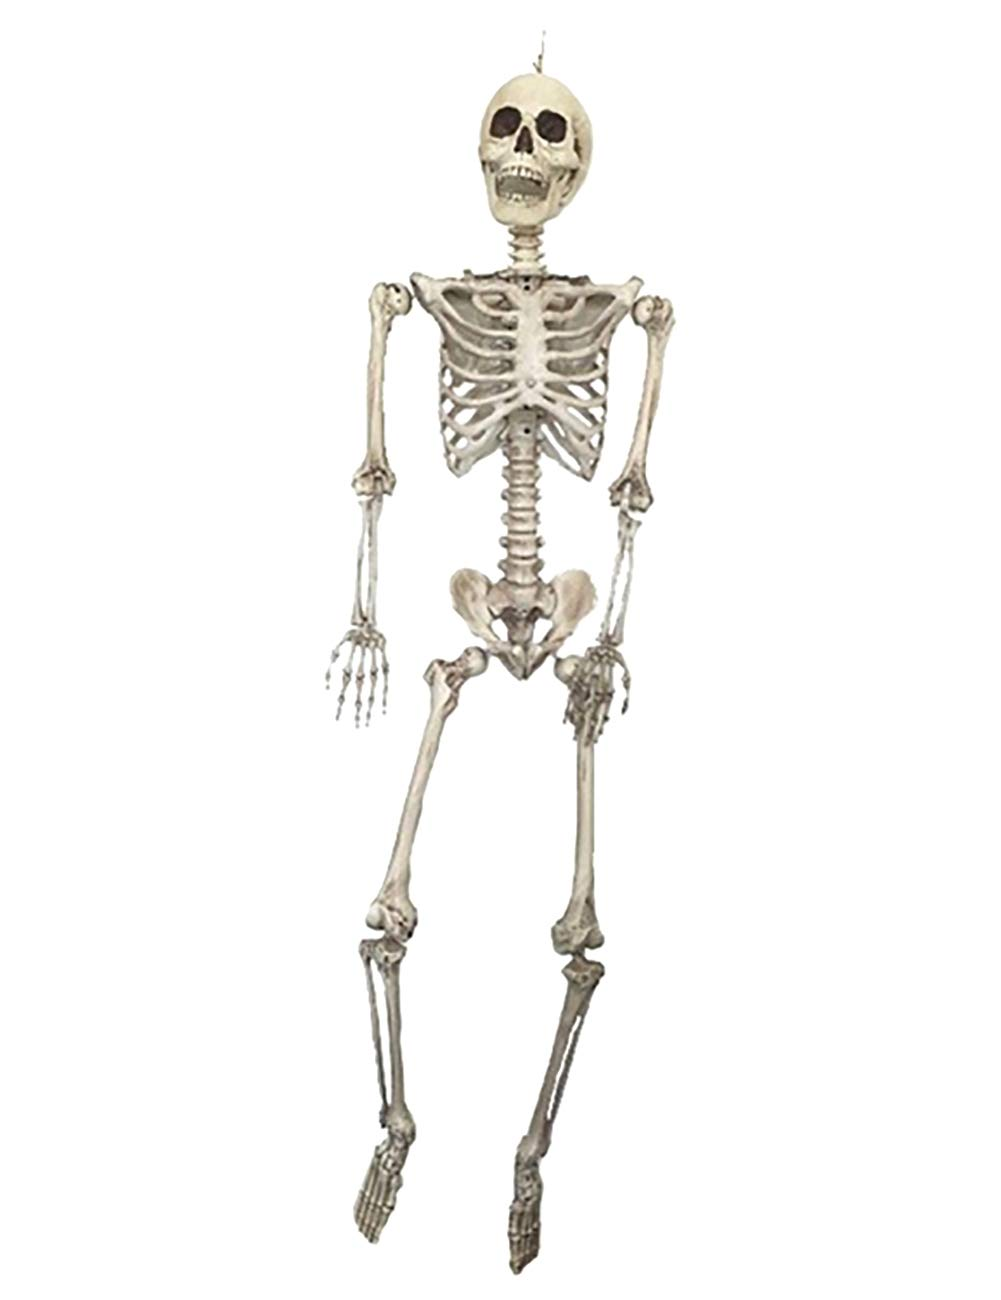 THEE Scary Skull Bone Party Human Skeleton Anatomical Model Halloween Decoration Height 90cm/35''